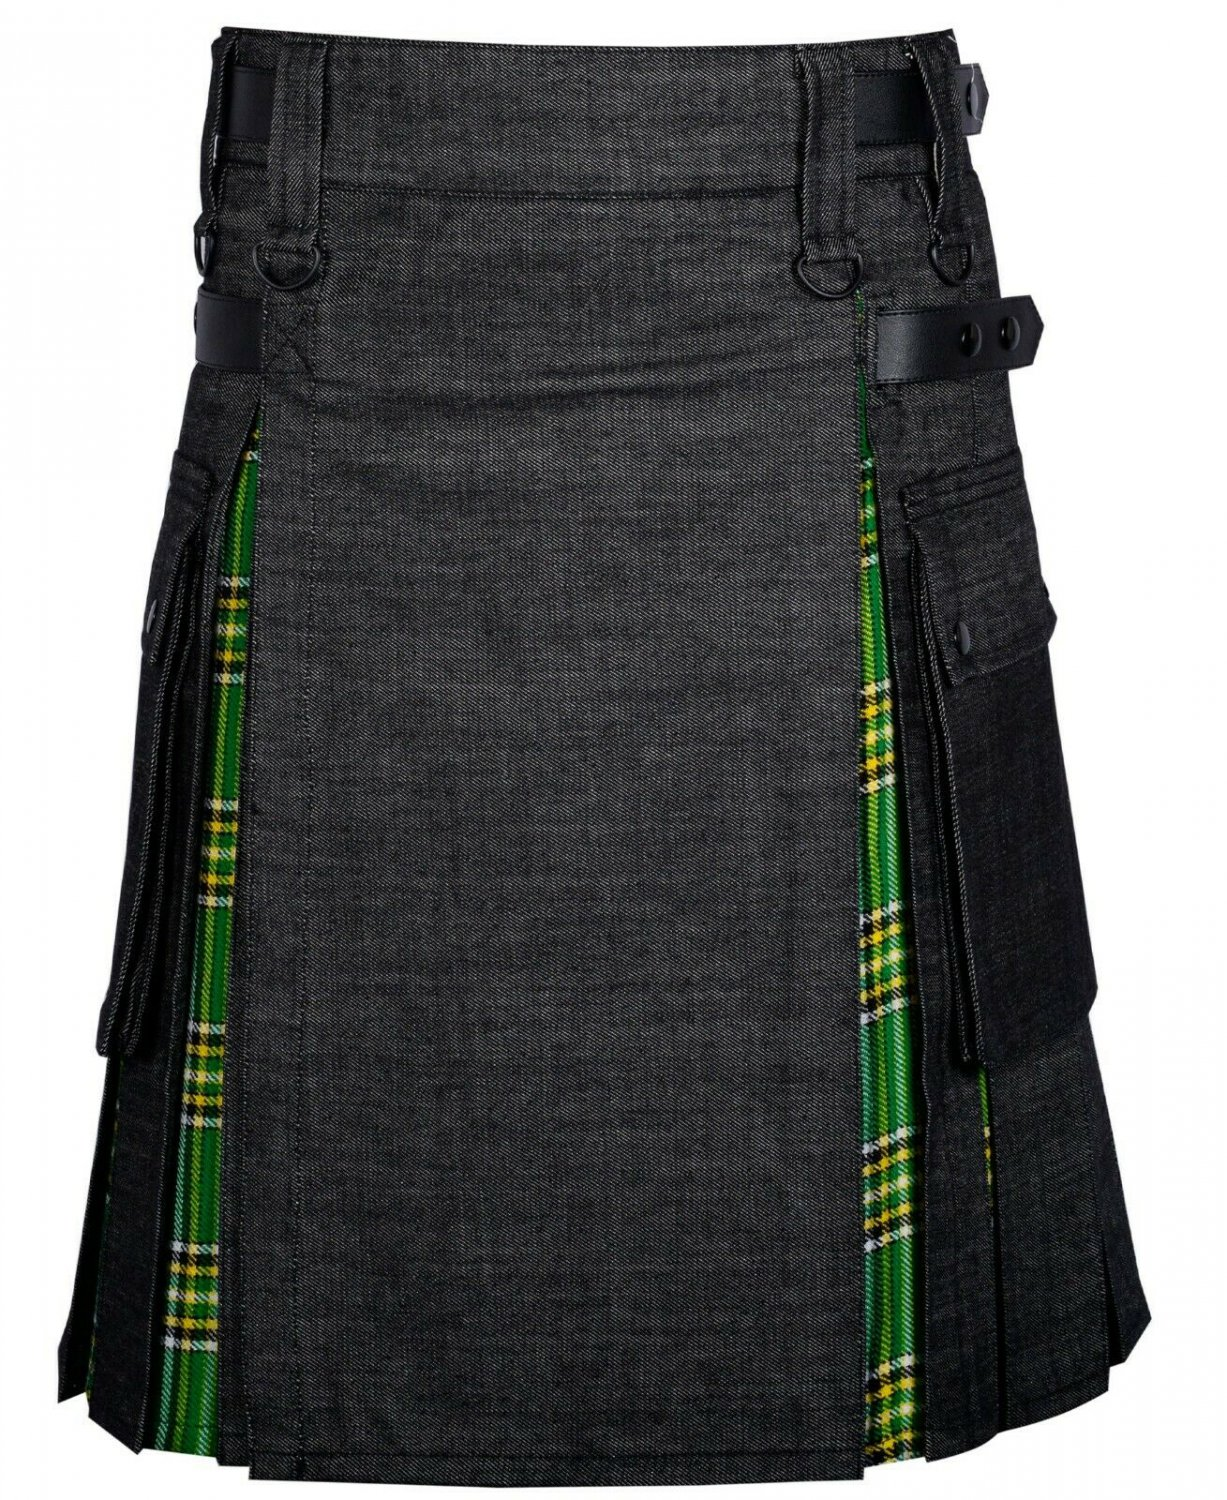 48 Size Black denim-Irish tartan Scottish Utility Cargo Hybrid Cotton Kilt For Men